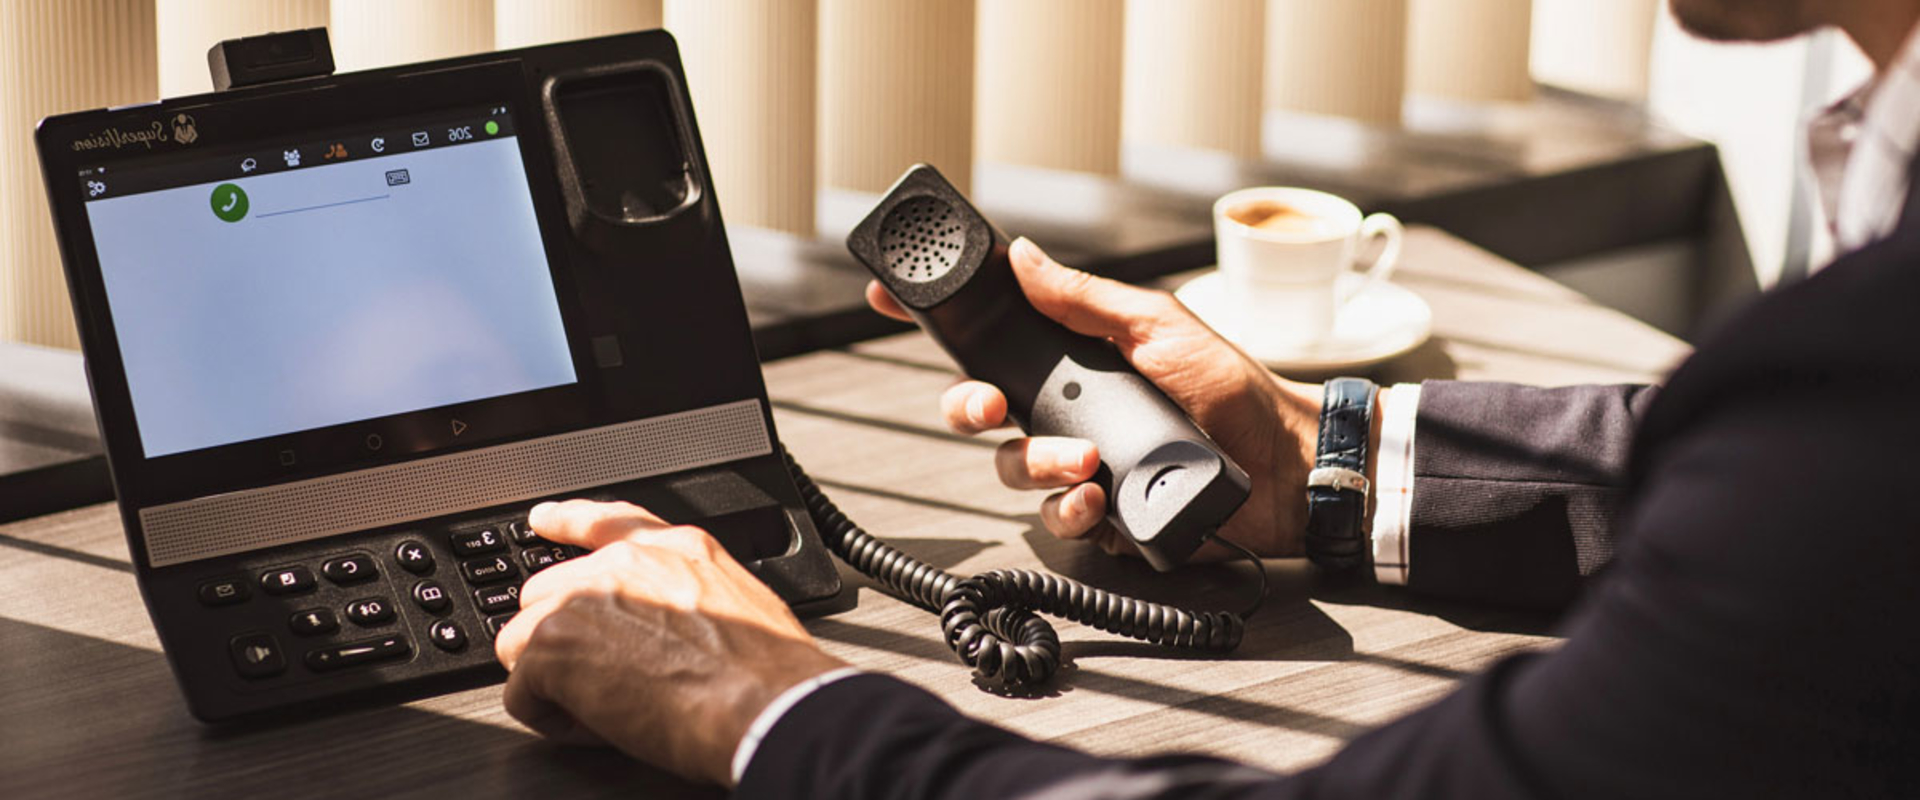 how do business voip providers benefit different sectors in the uk?